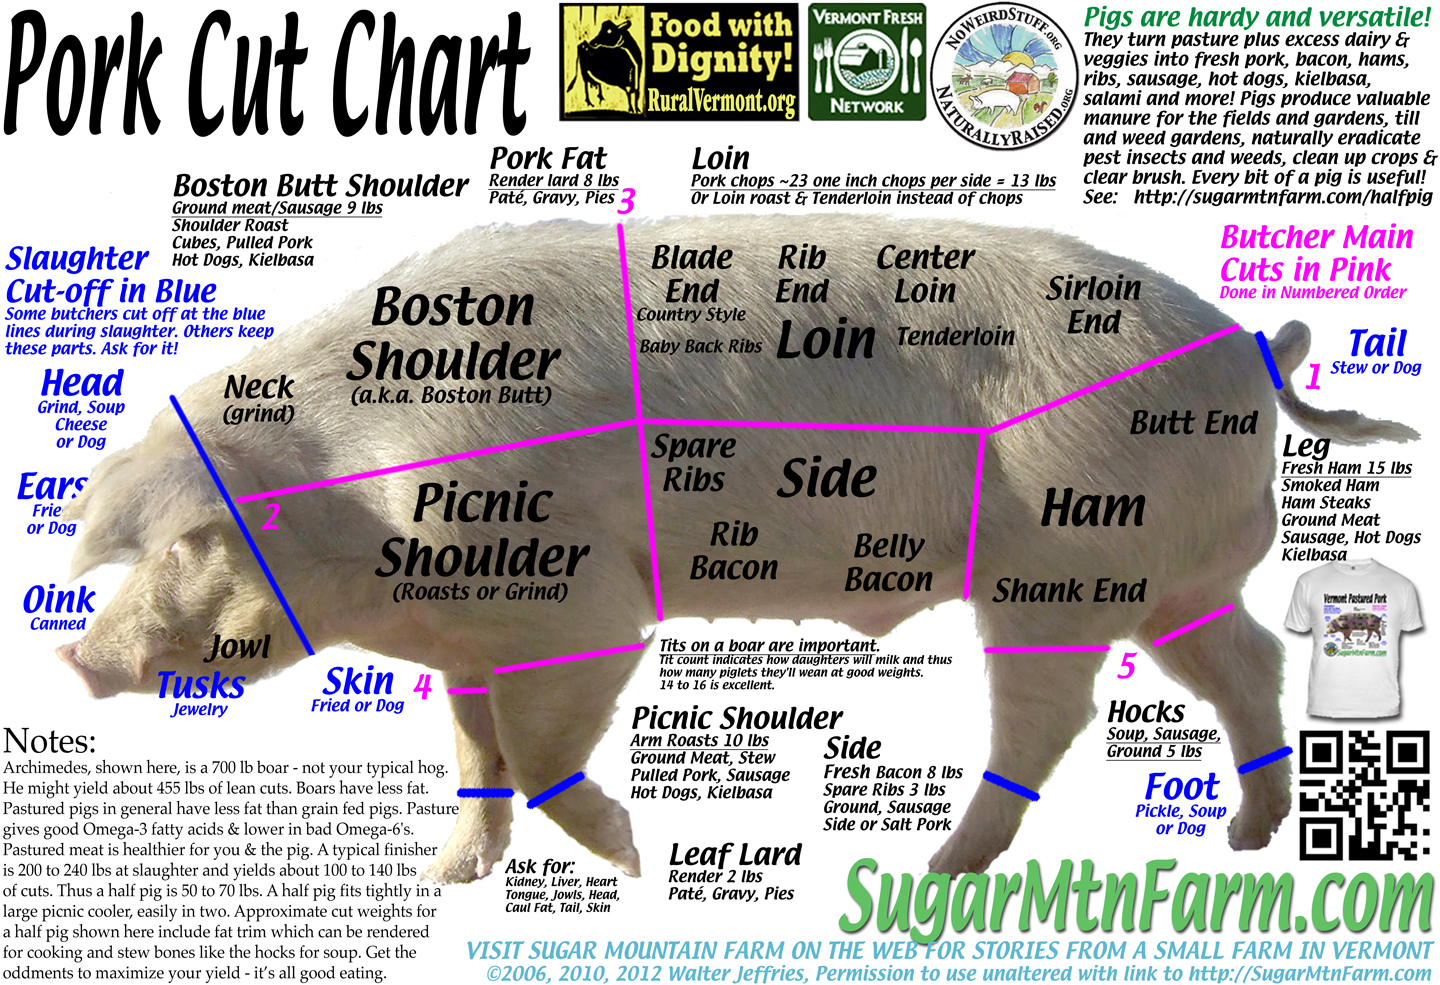 What Good is a Pig: Cuts of Pork, Nose-to-Tail | Sugar Mountain Farm